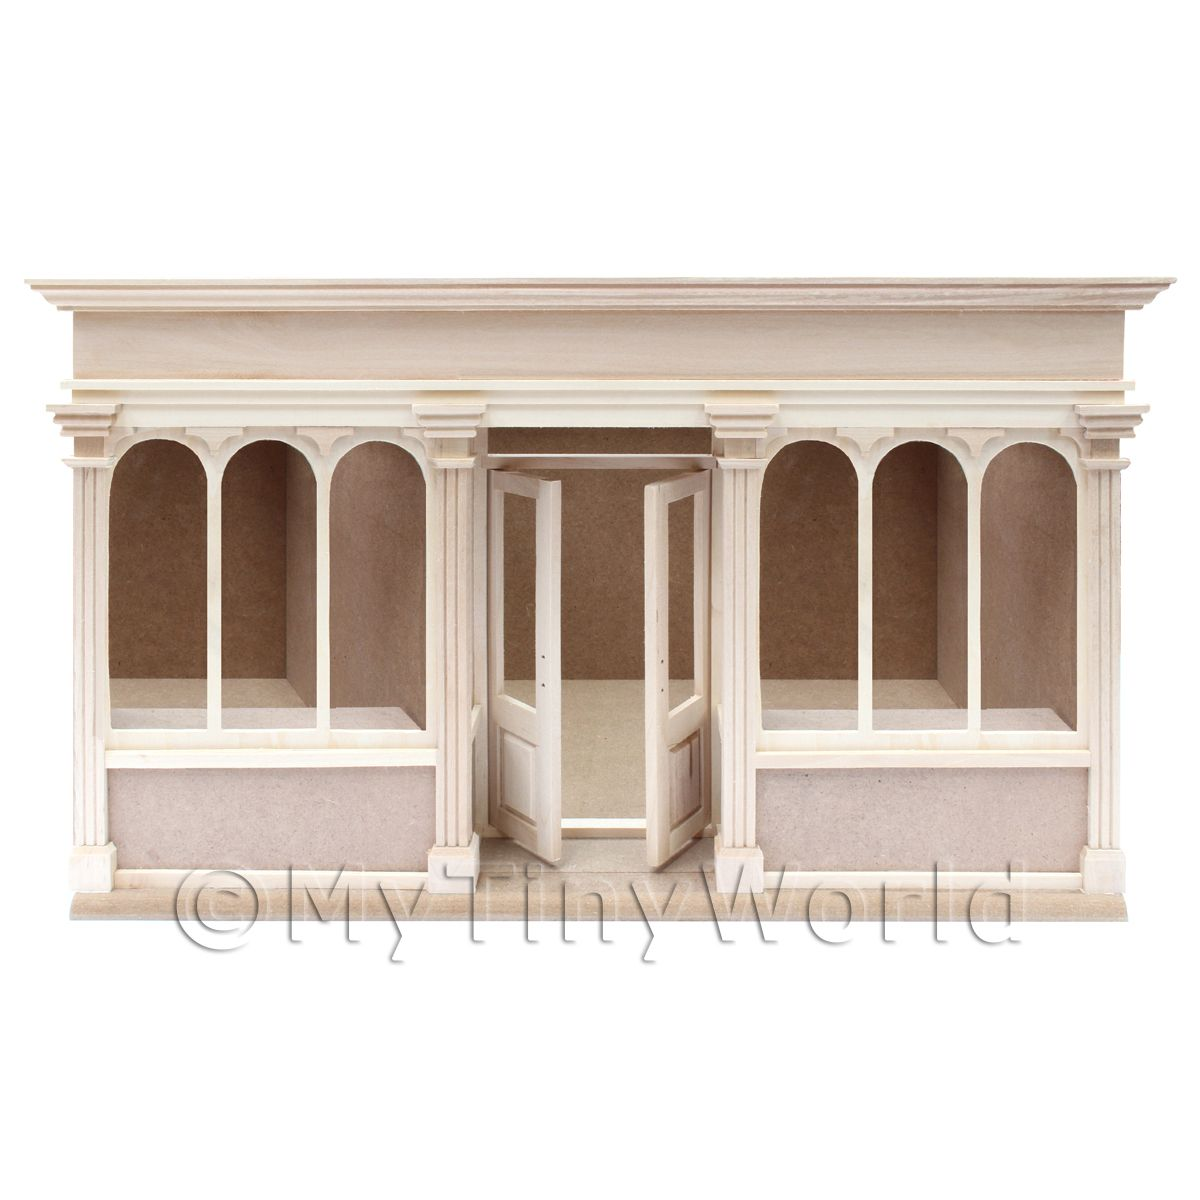 Dolls House Miniature 6 Pane Long Shop Shop Kit